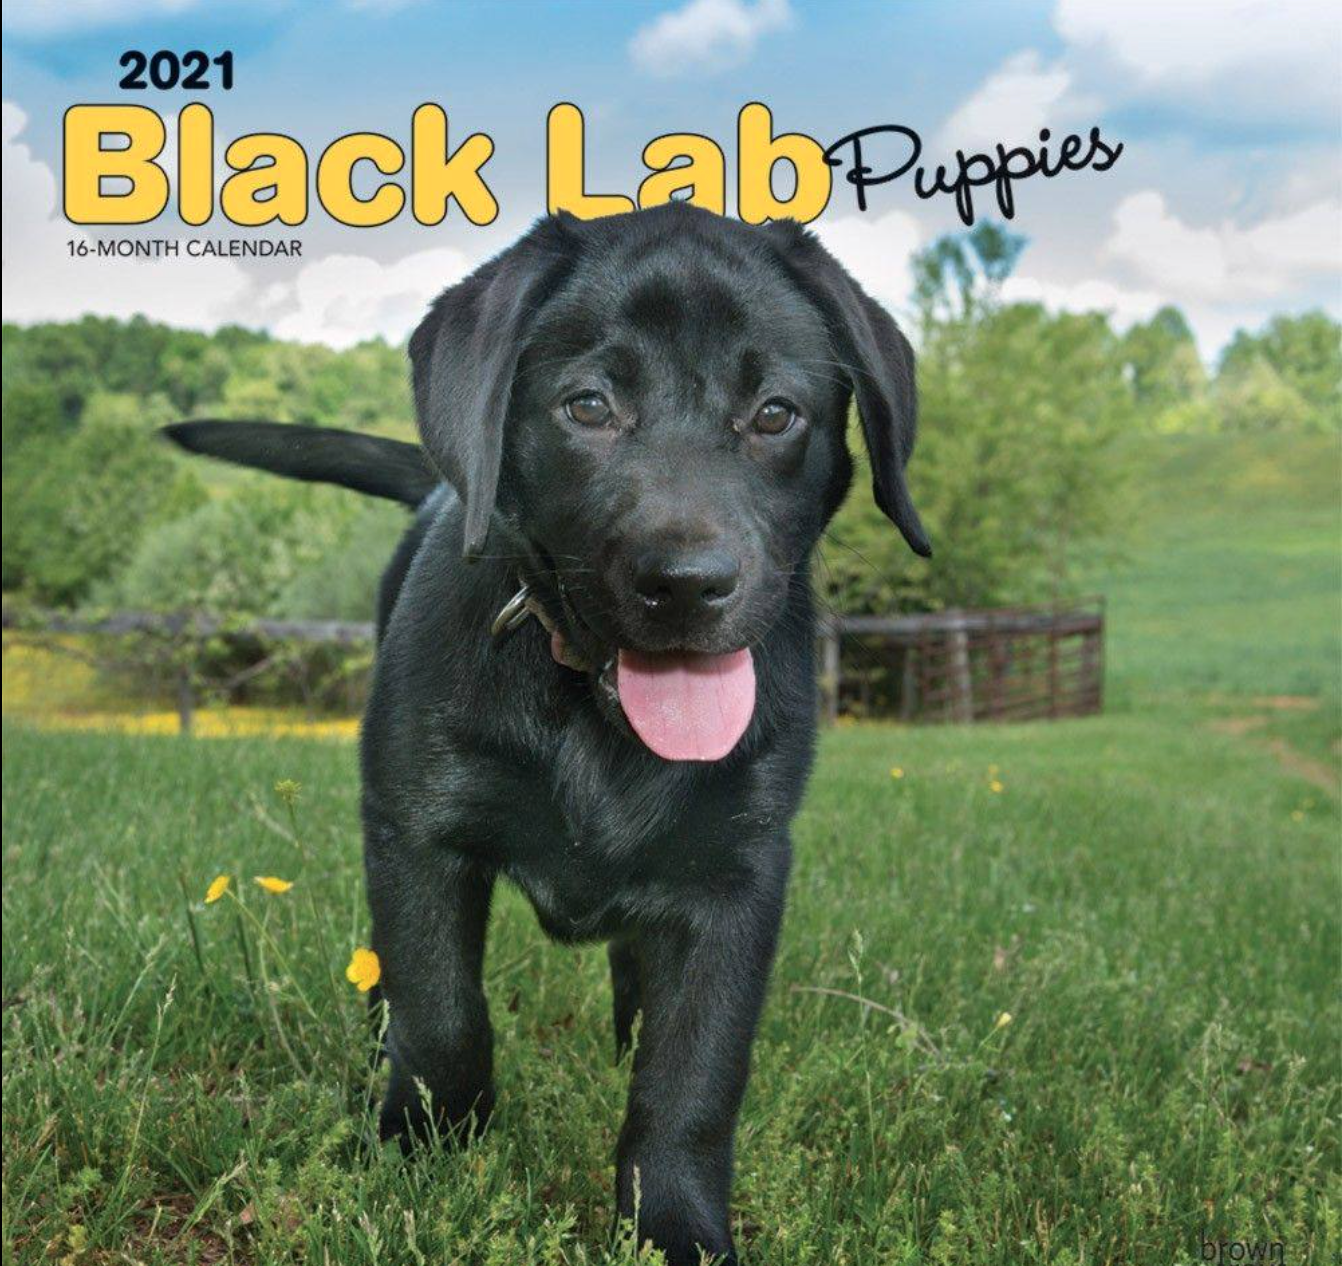 Above: Specific dog breed calendars have historically been a big seller for BrownTrout.